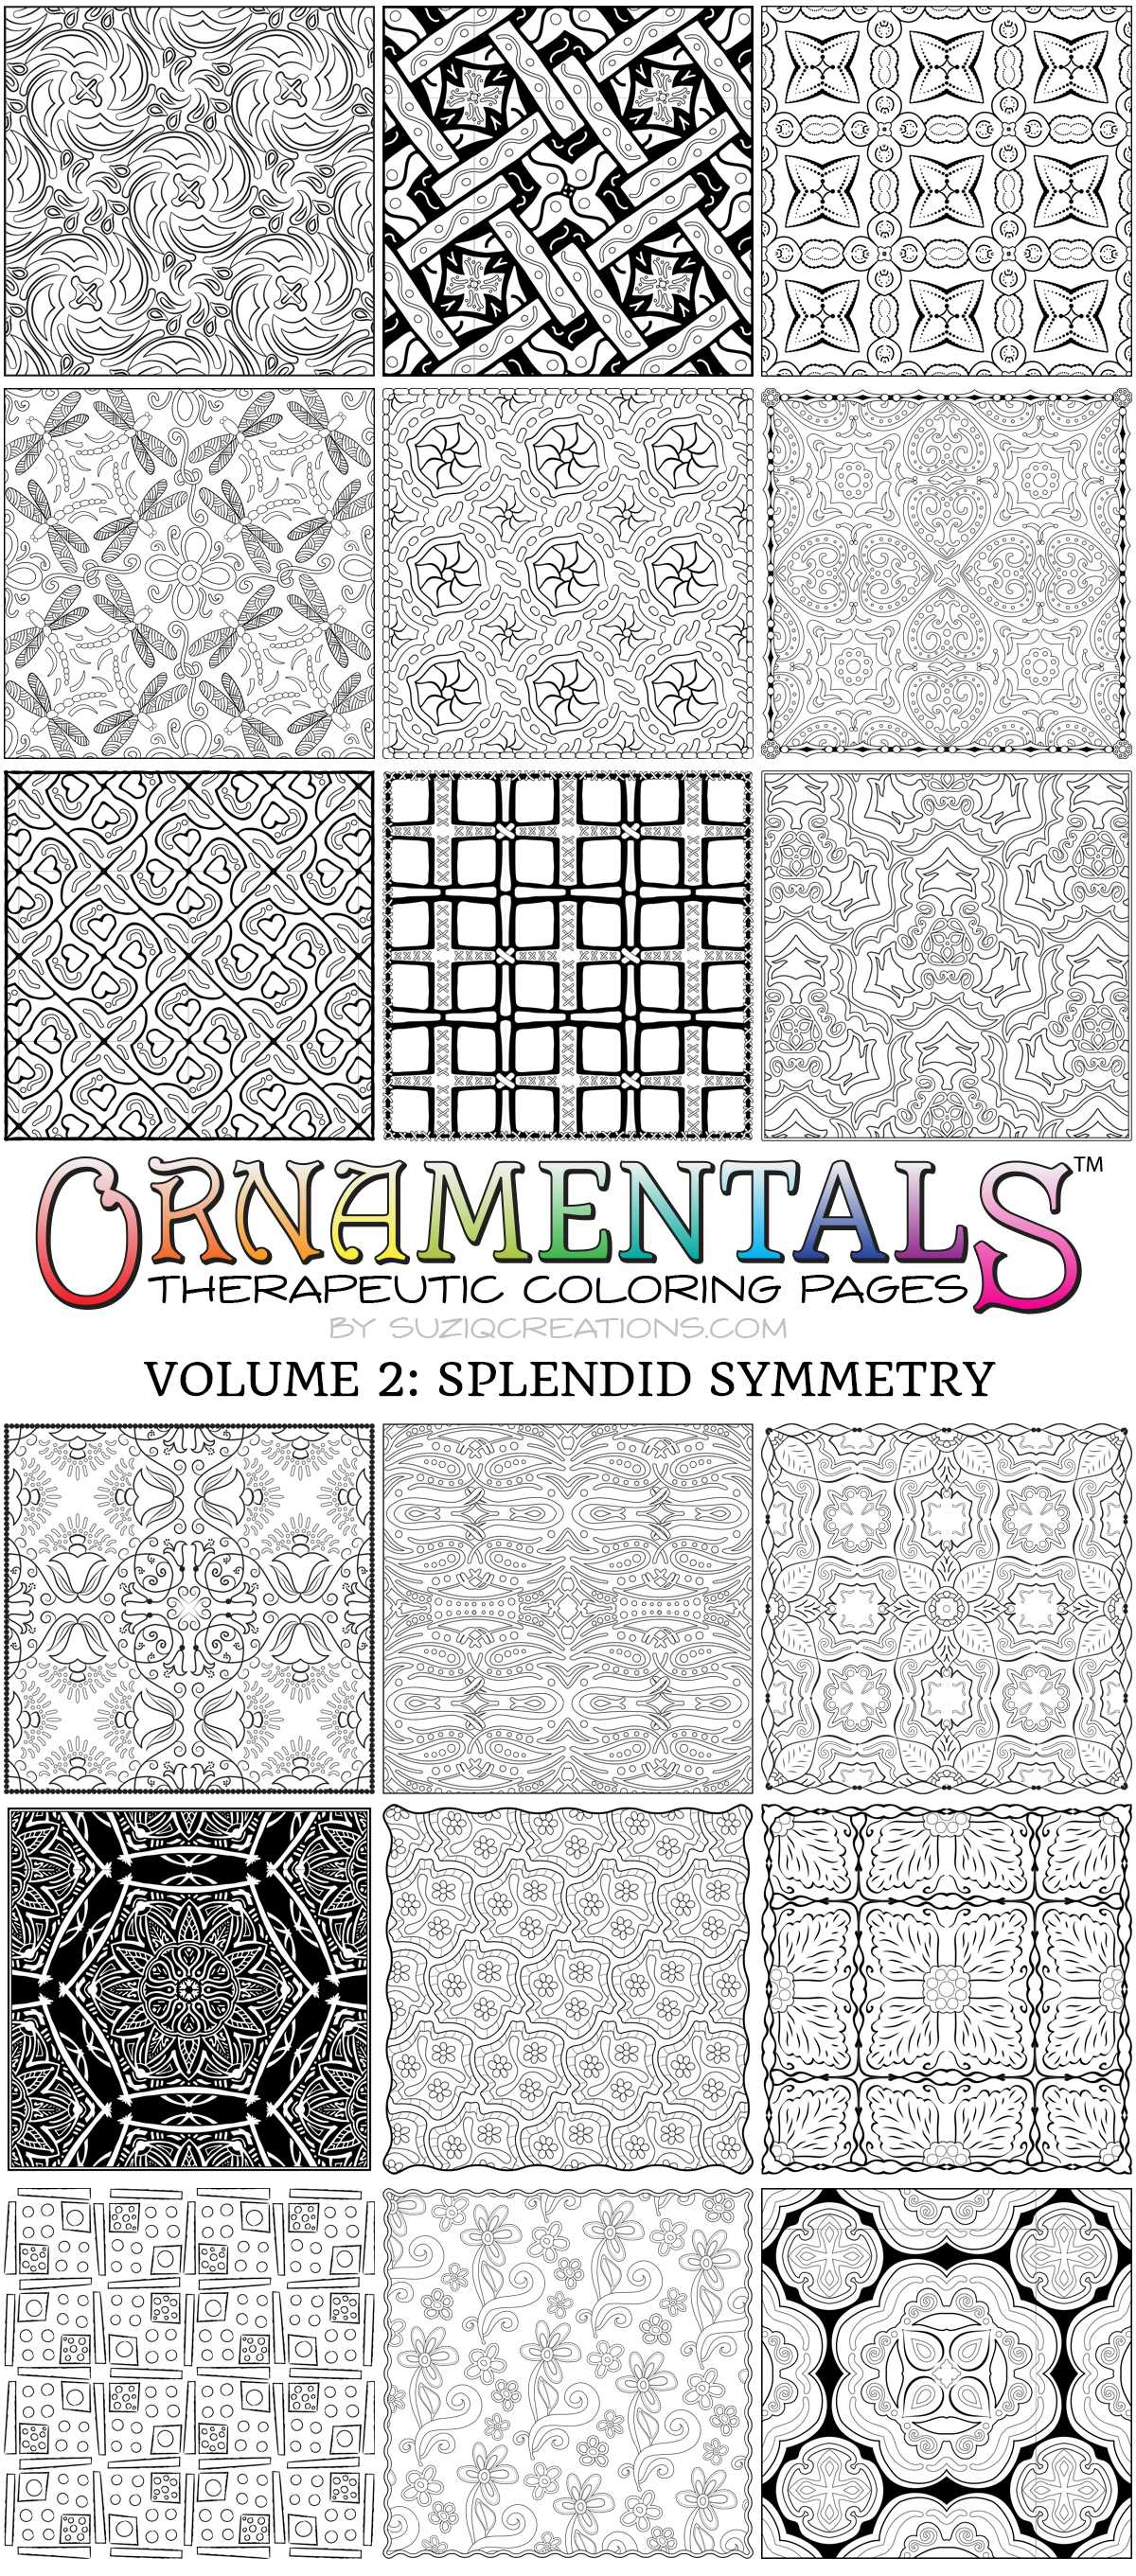 Designs from OrnaMENTALs™ Volume 2: Splendid Symmetry (1 of 2)